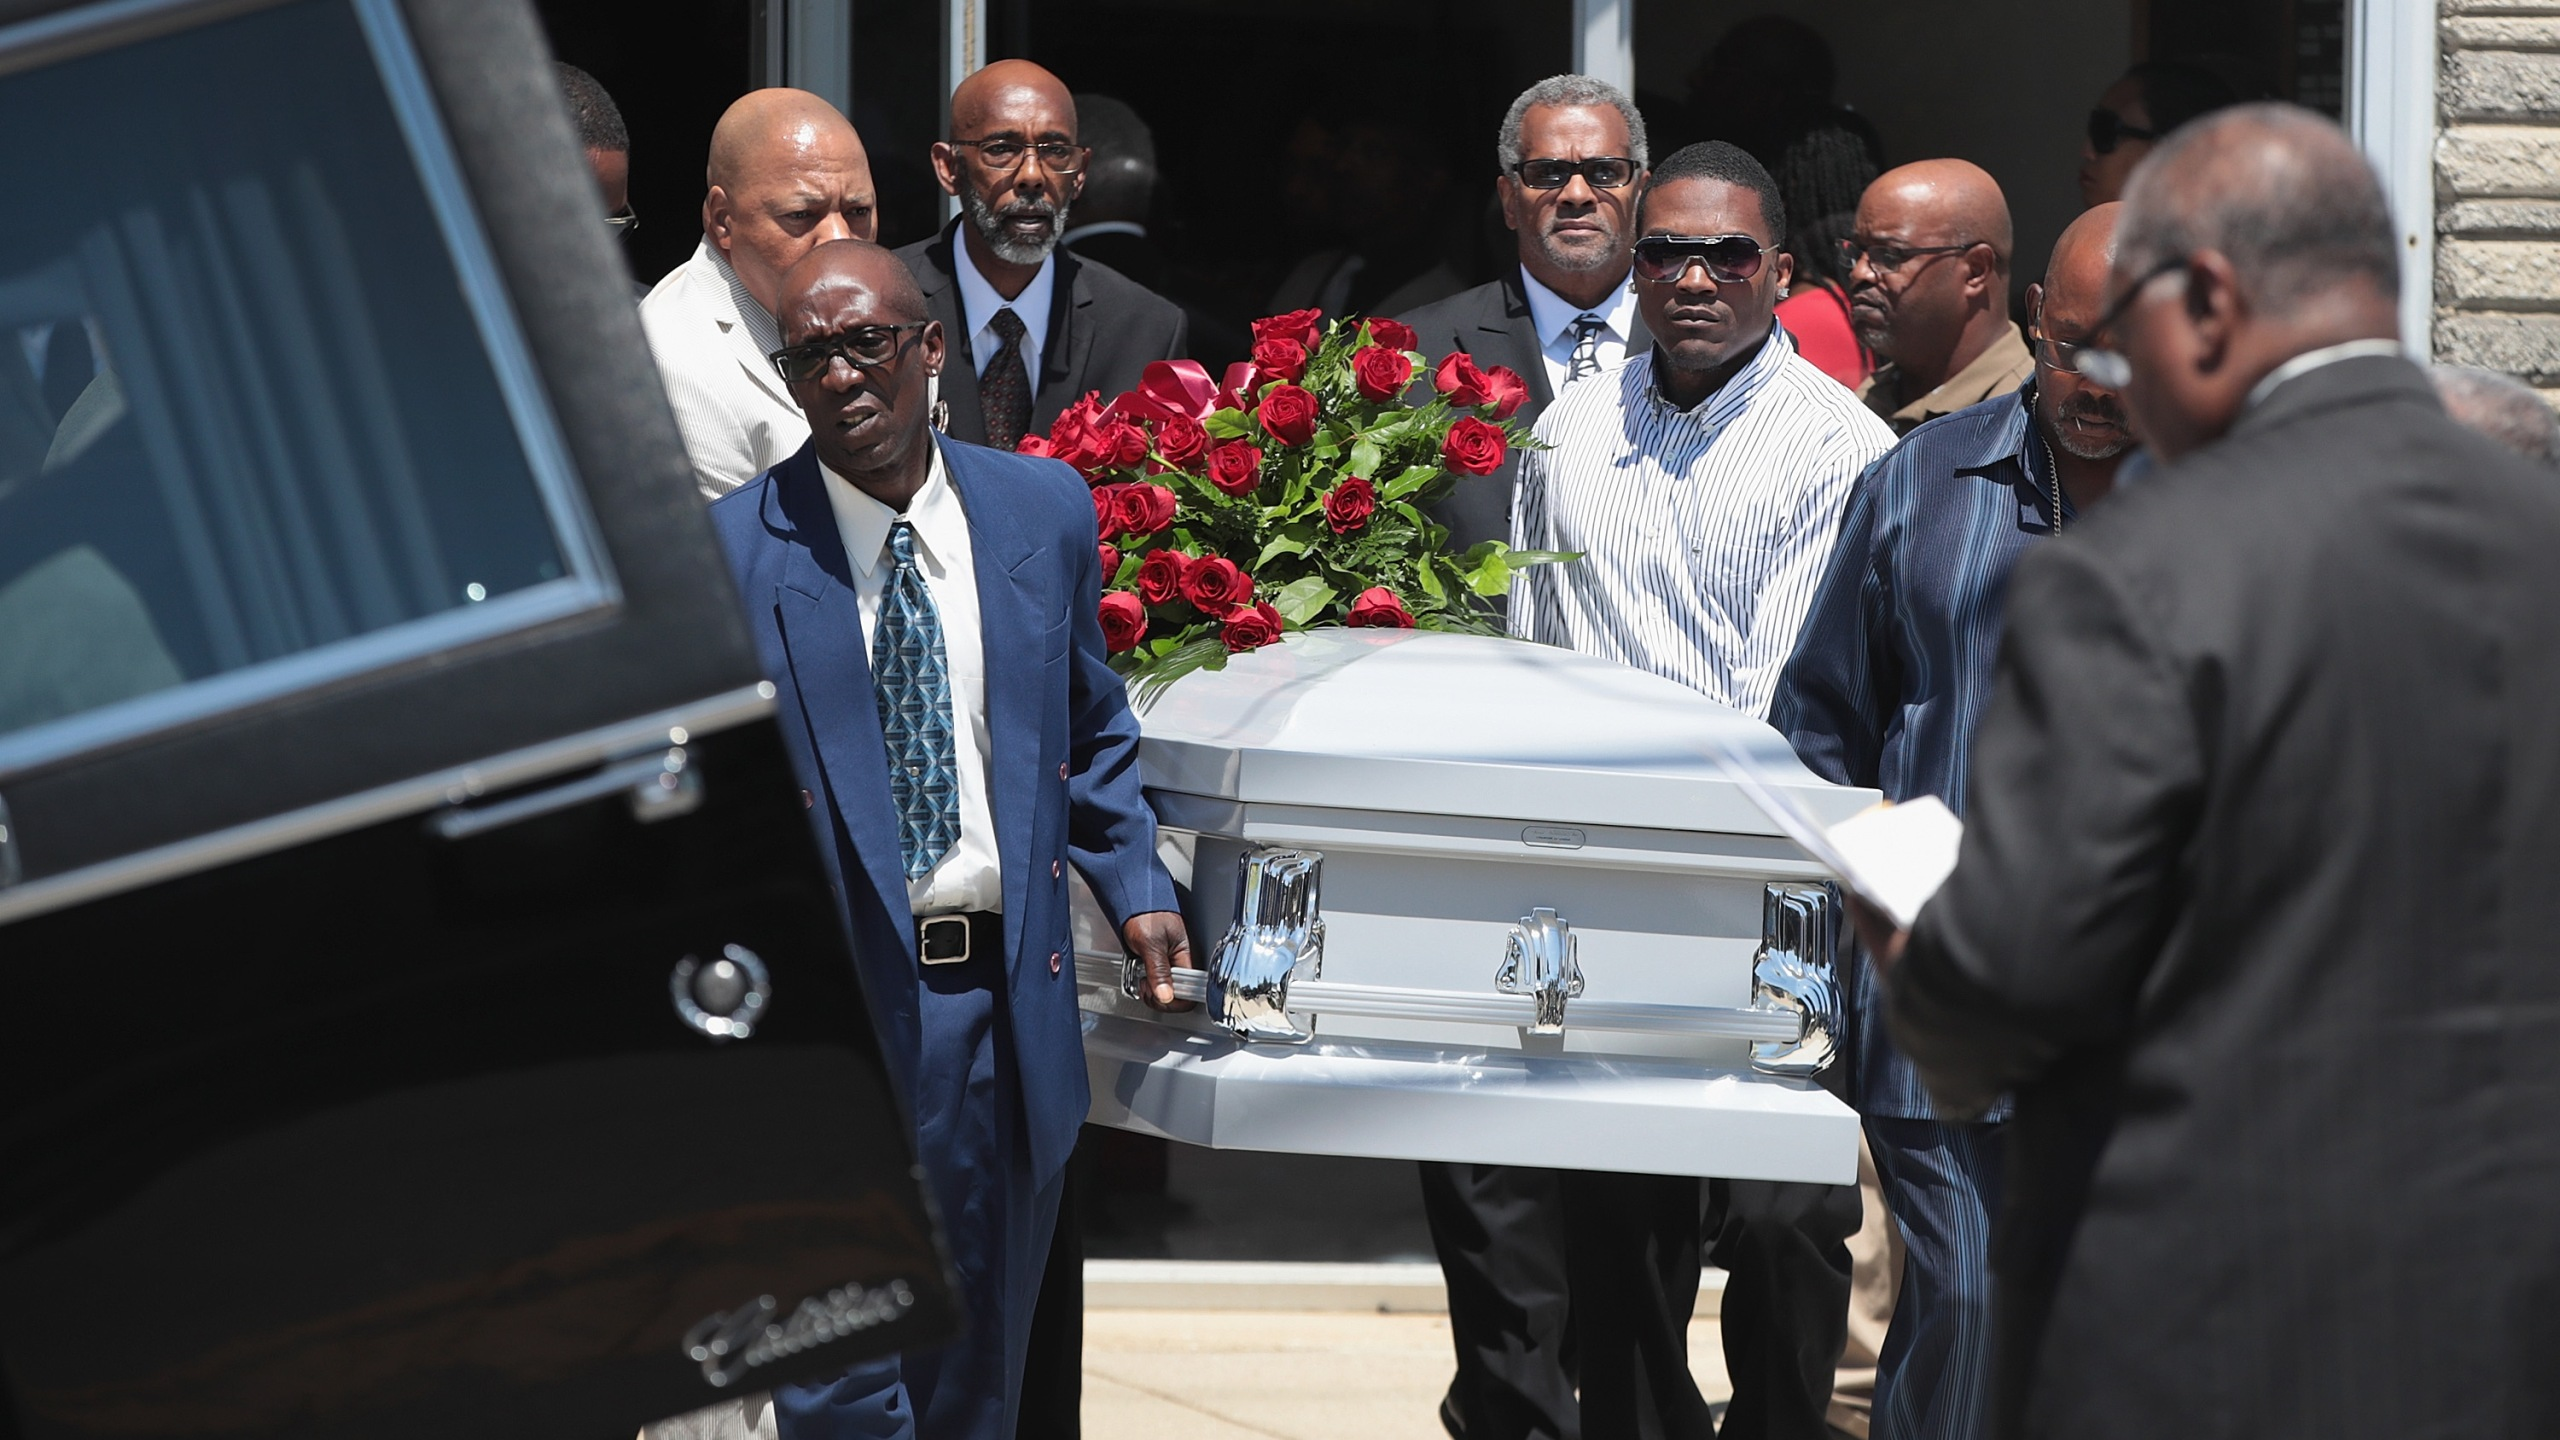 The remains of Derrick Fudge, 57, are placed in a hearse outside of St. John Missionary Baptist Church in Springfield, Ohio, following his funeral service on Aug. 10, 2019. Fudge was one of nine people killed when 24-year-old Connor Betts opened fire with a AR-15 style rifle in nearby Dayton.(Credit: Scott Olson / Getty Images)